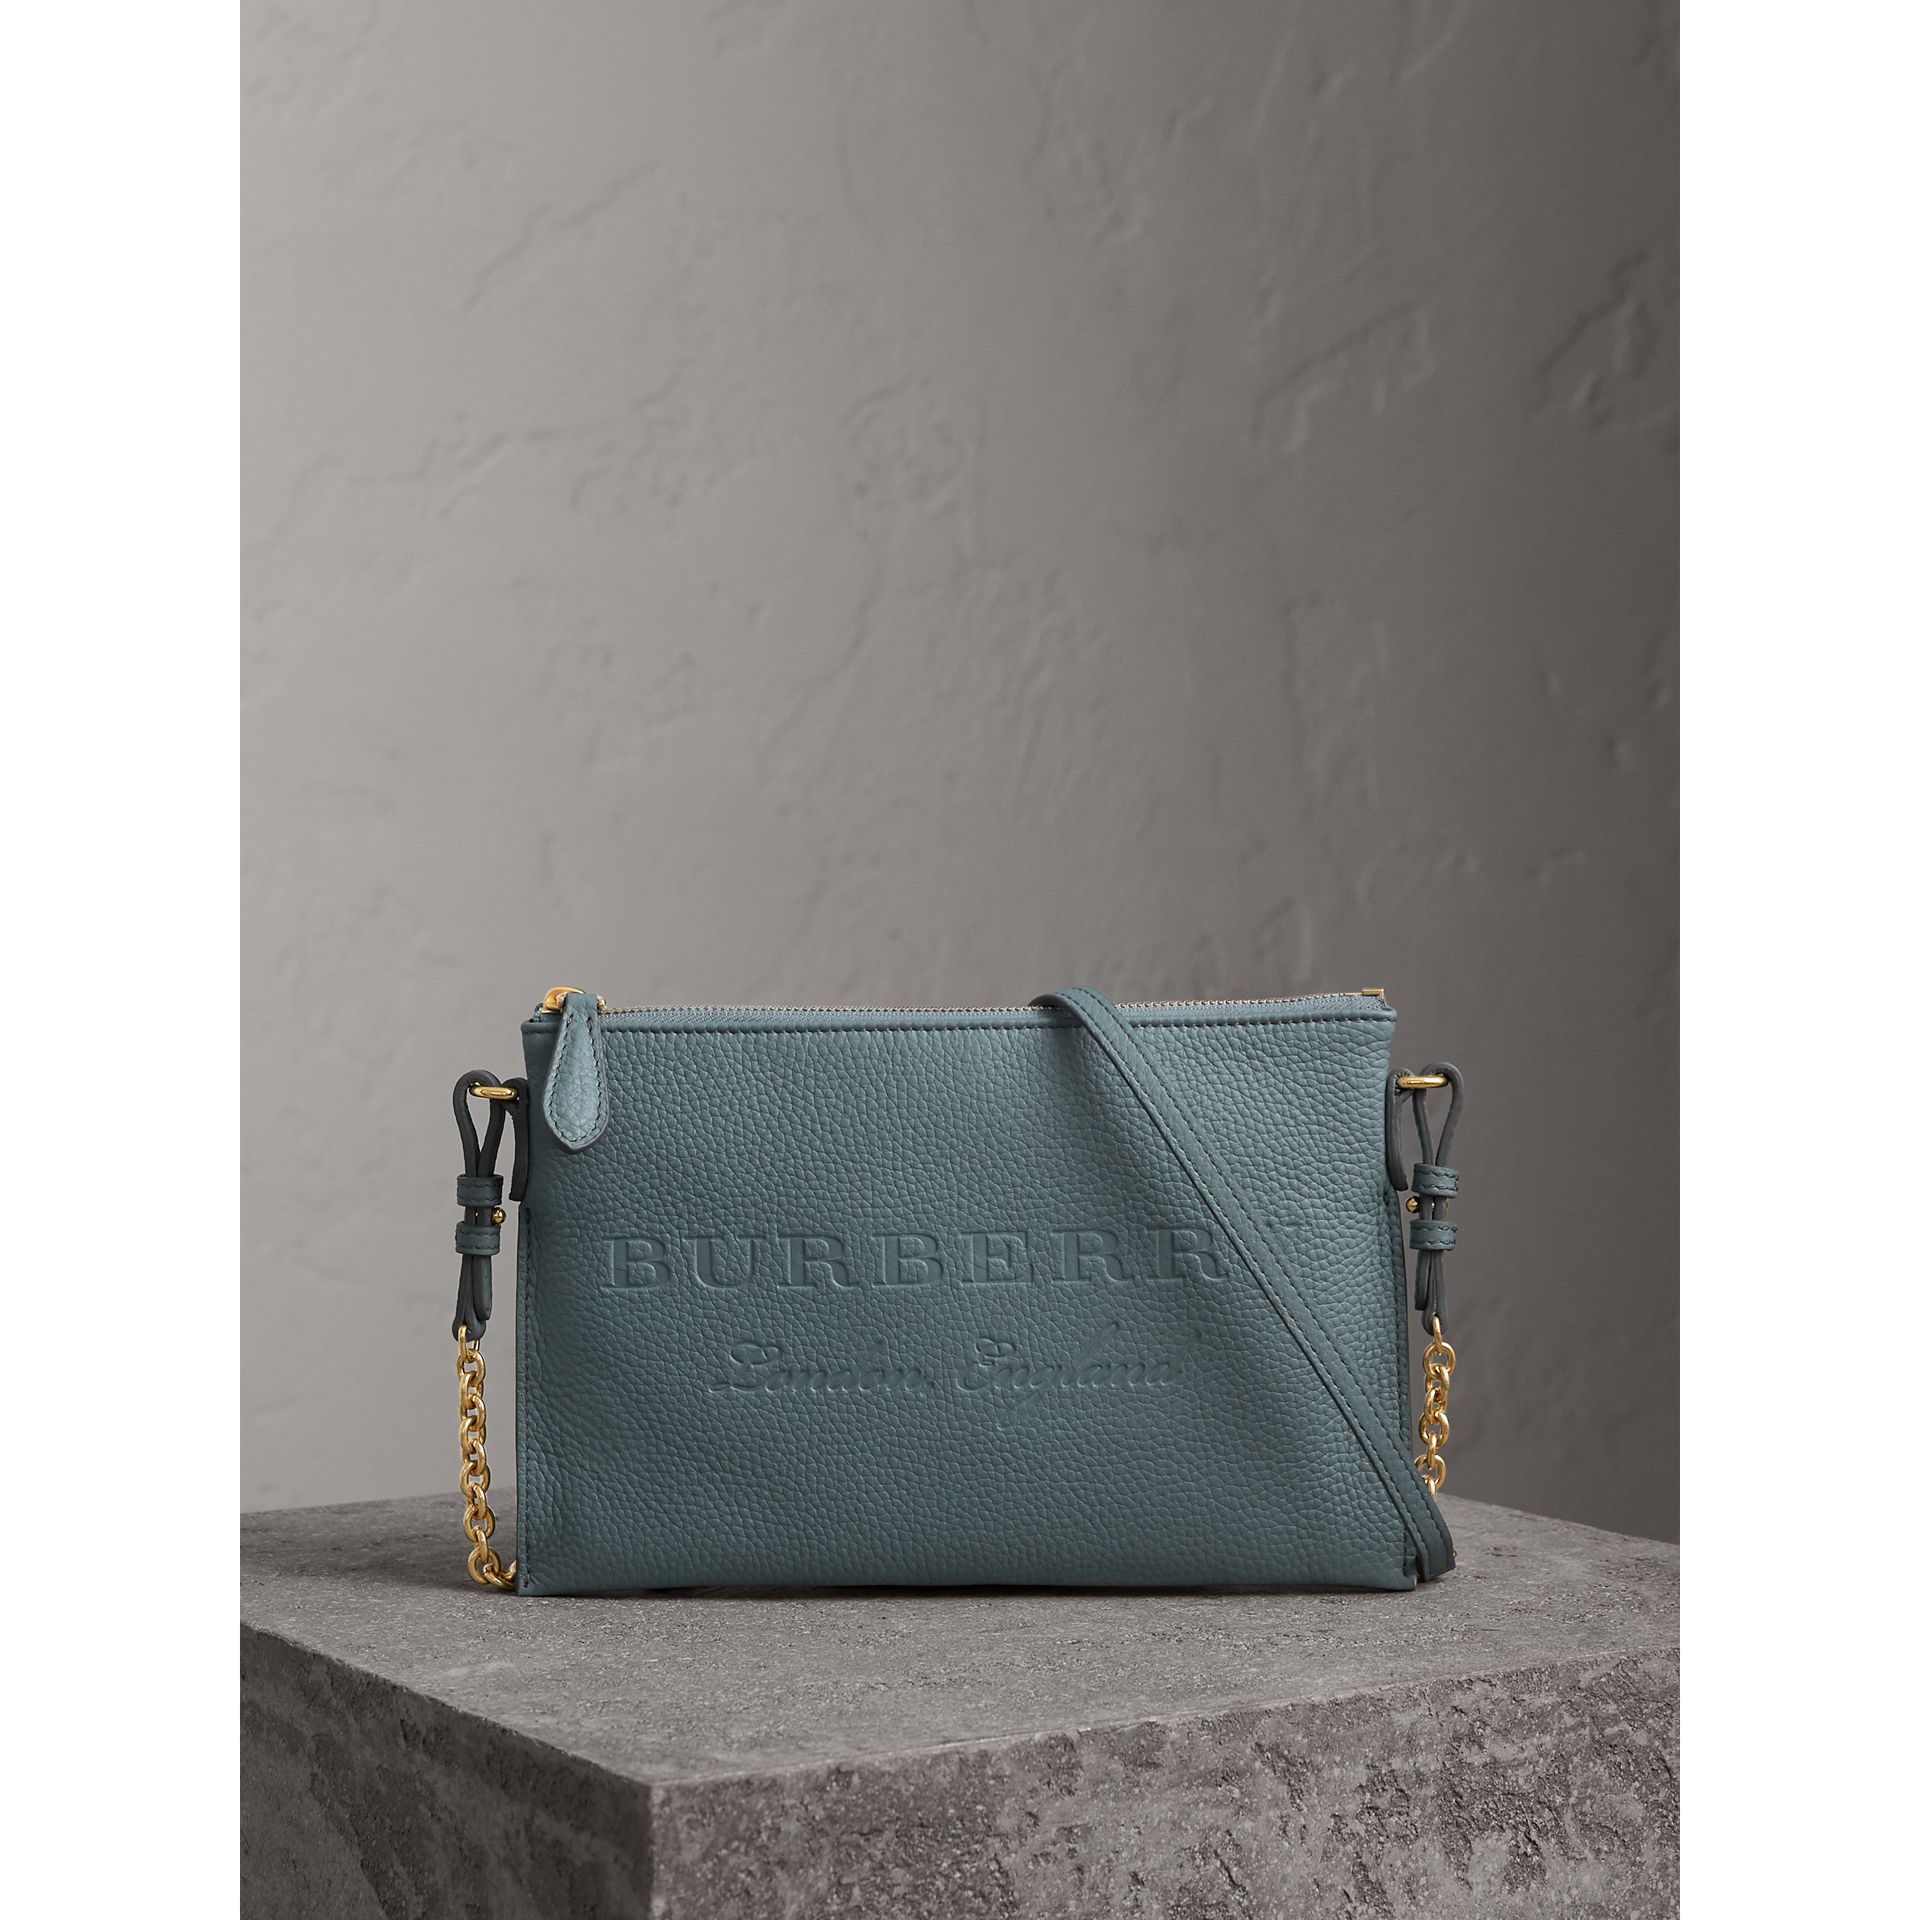 Embossed Leather Clutch Bag in Dusty Teal Blue - Women | Burberry United Kingdom - gallery image 1